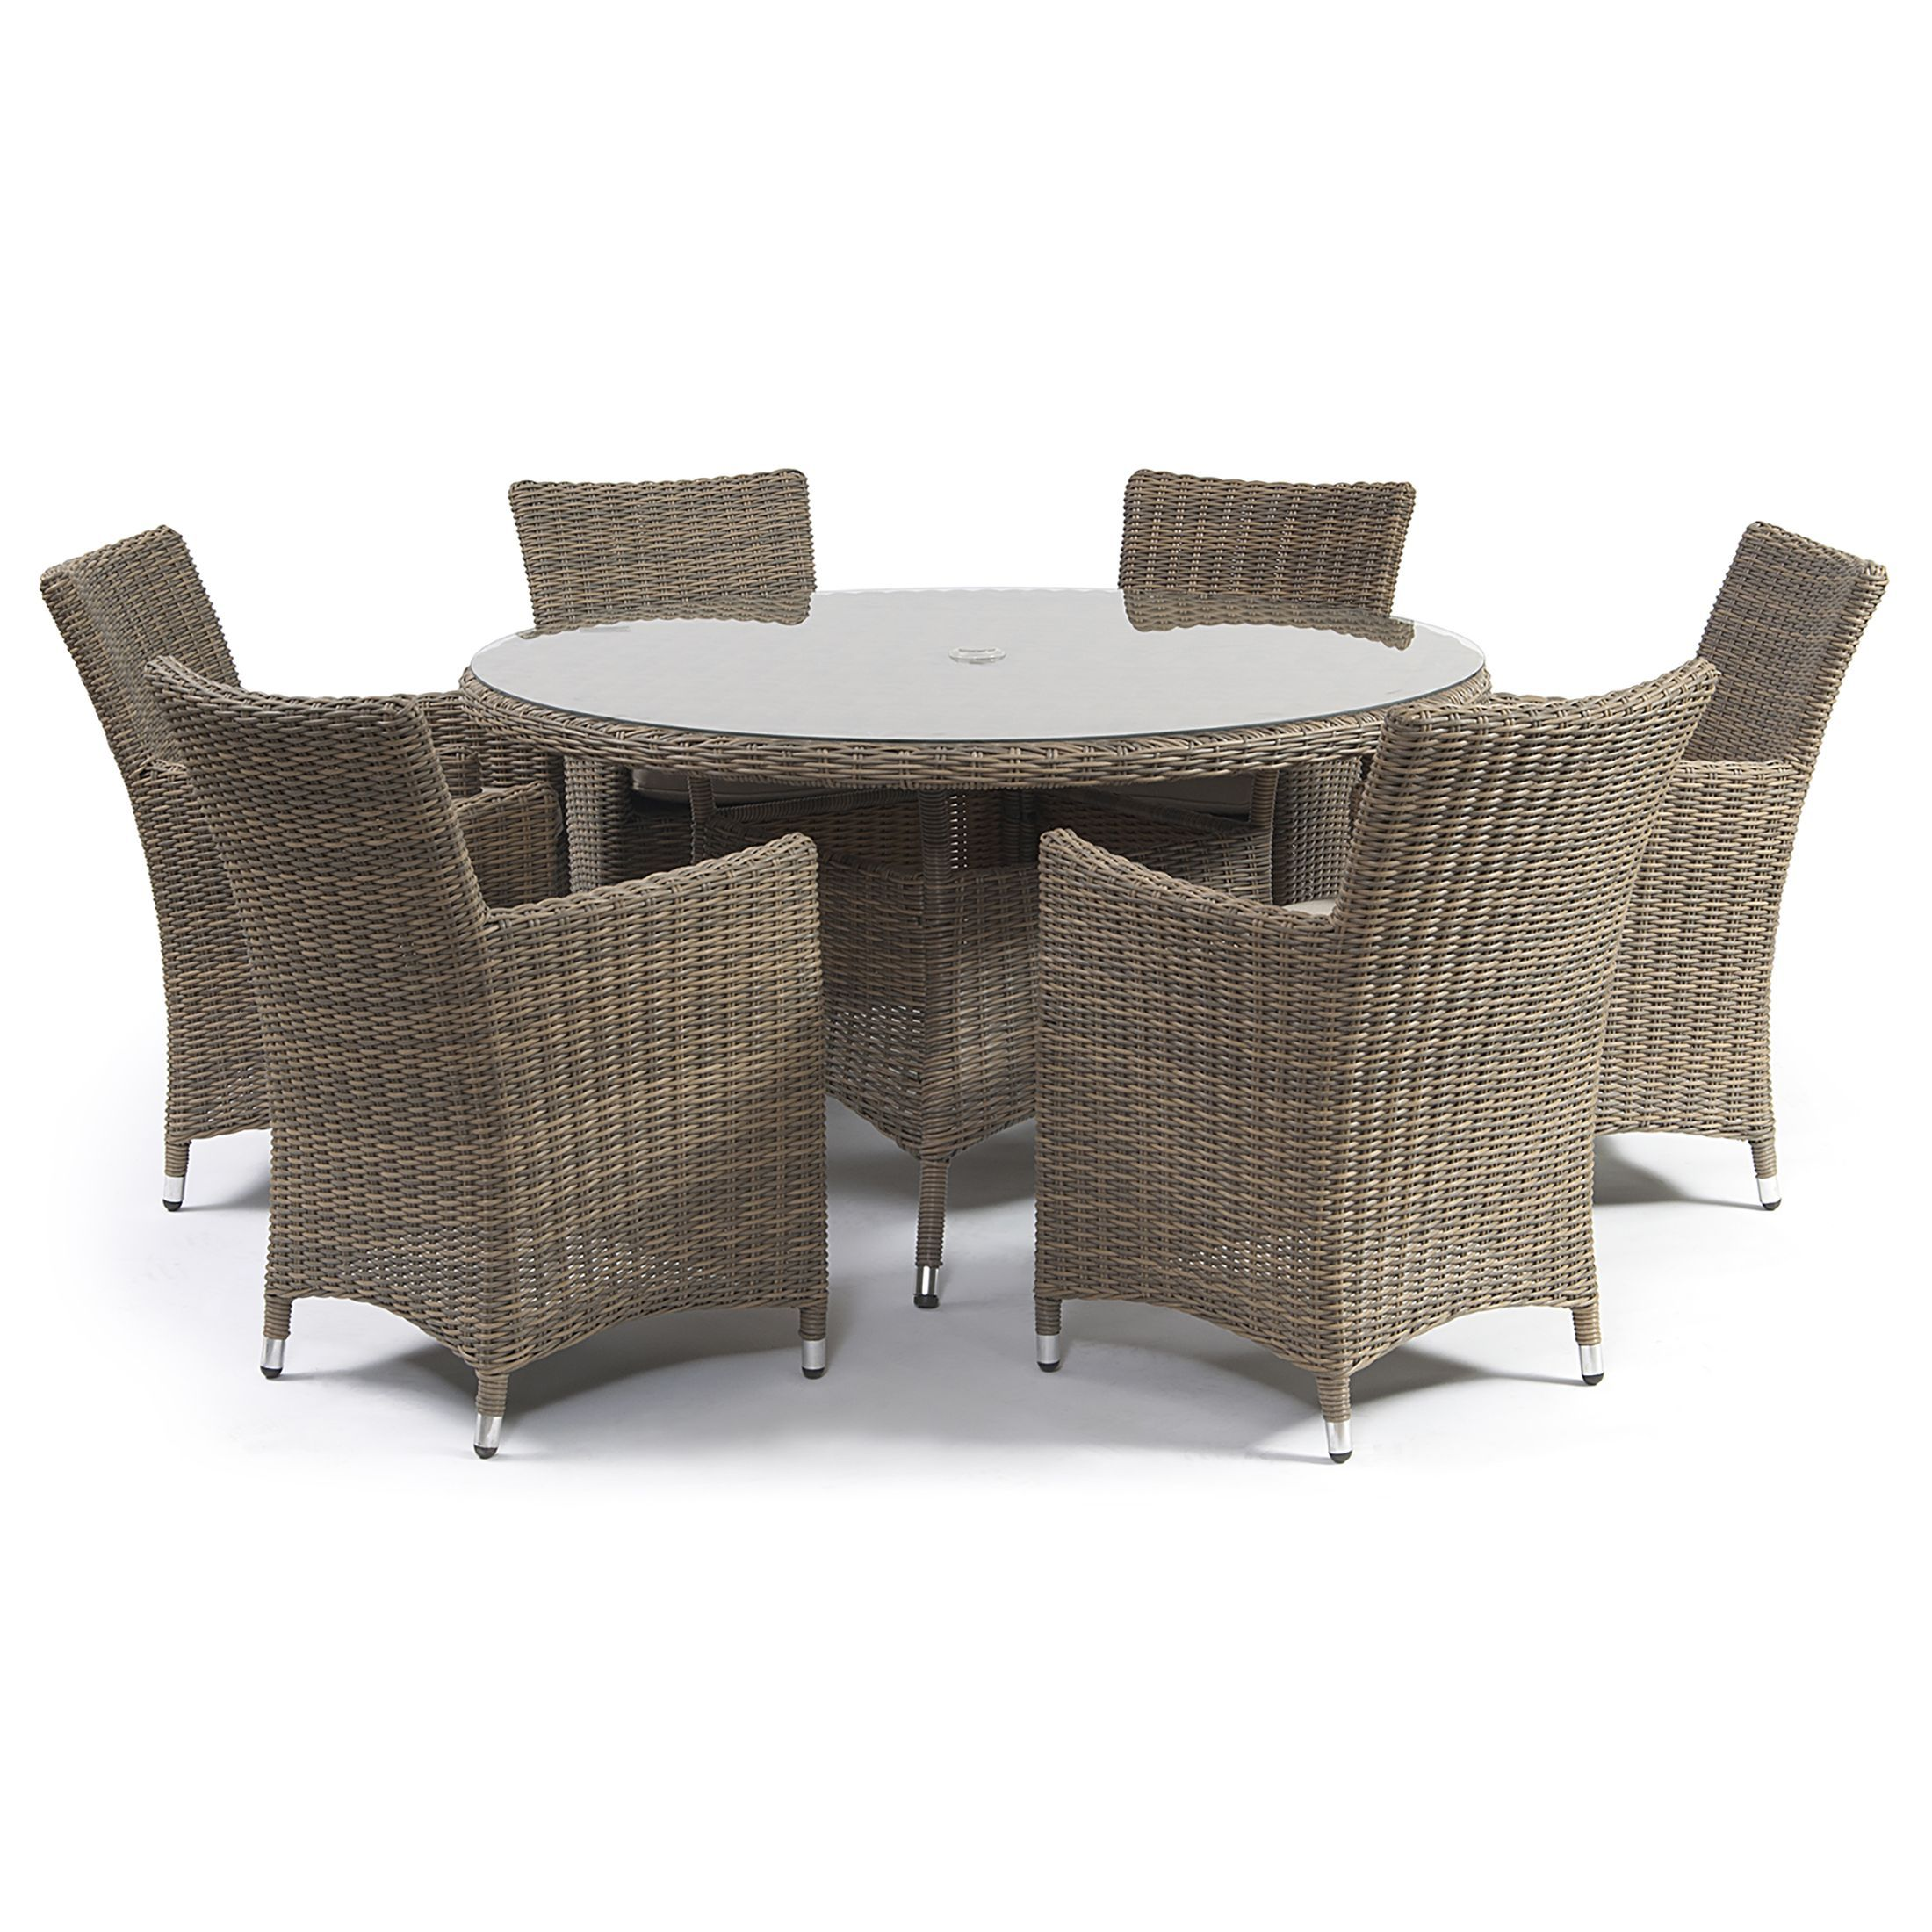 7 Piece Round Patio Dining Set 7 Piece Causeway Rattan Dining Collection Natural Semi